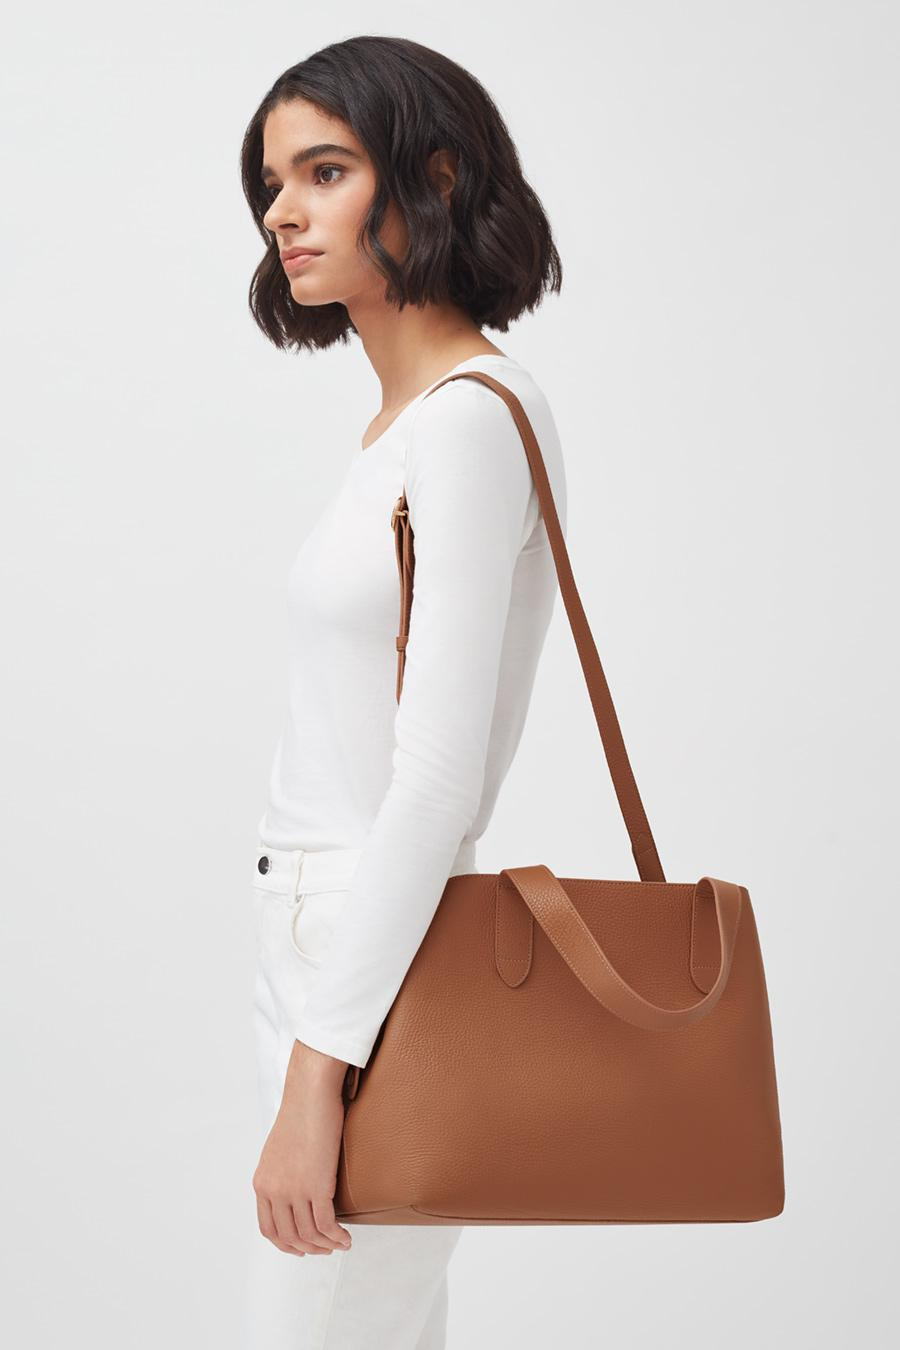 Women's Zippered Satchel Bag in Caramel | Pebbled Leather by Cuyana 4